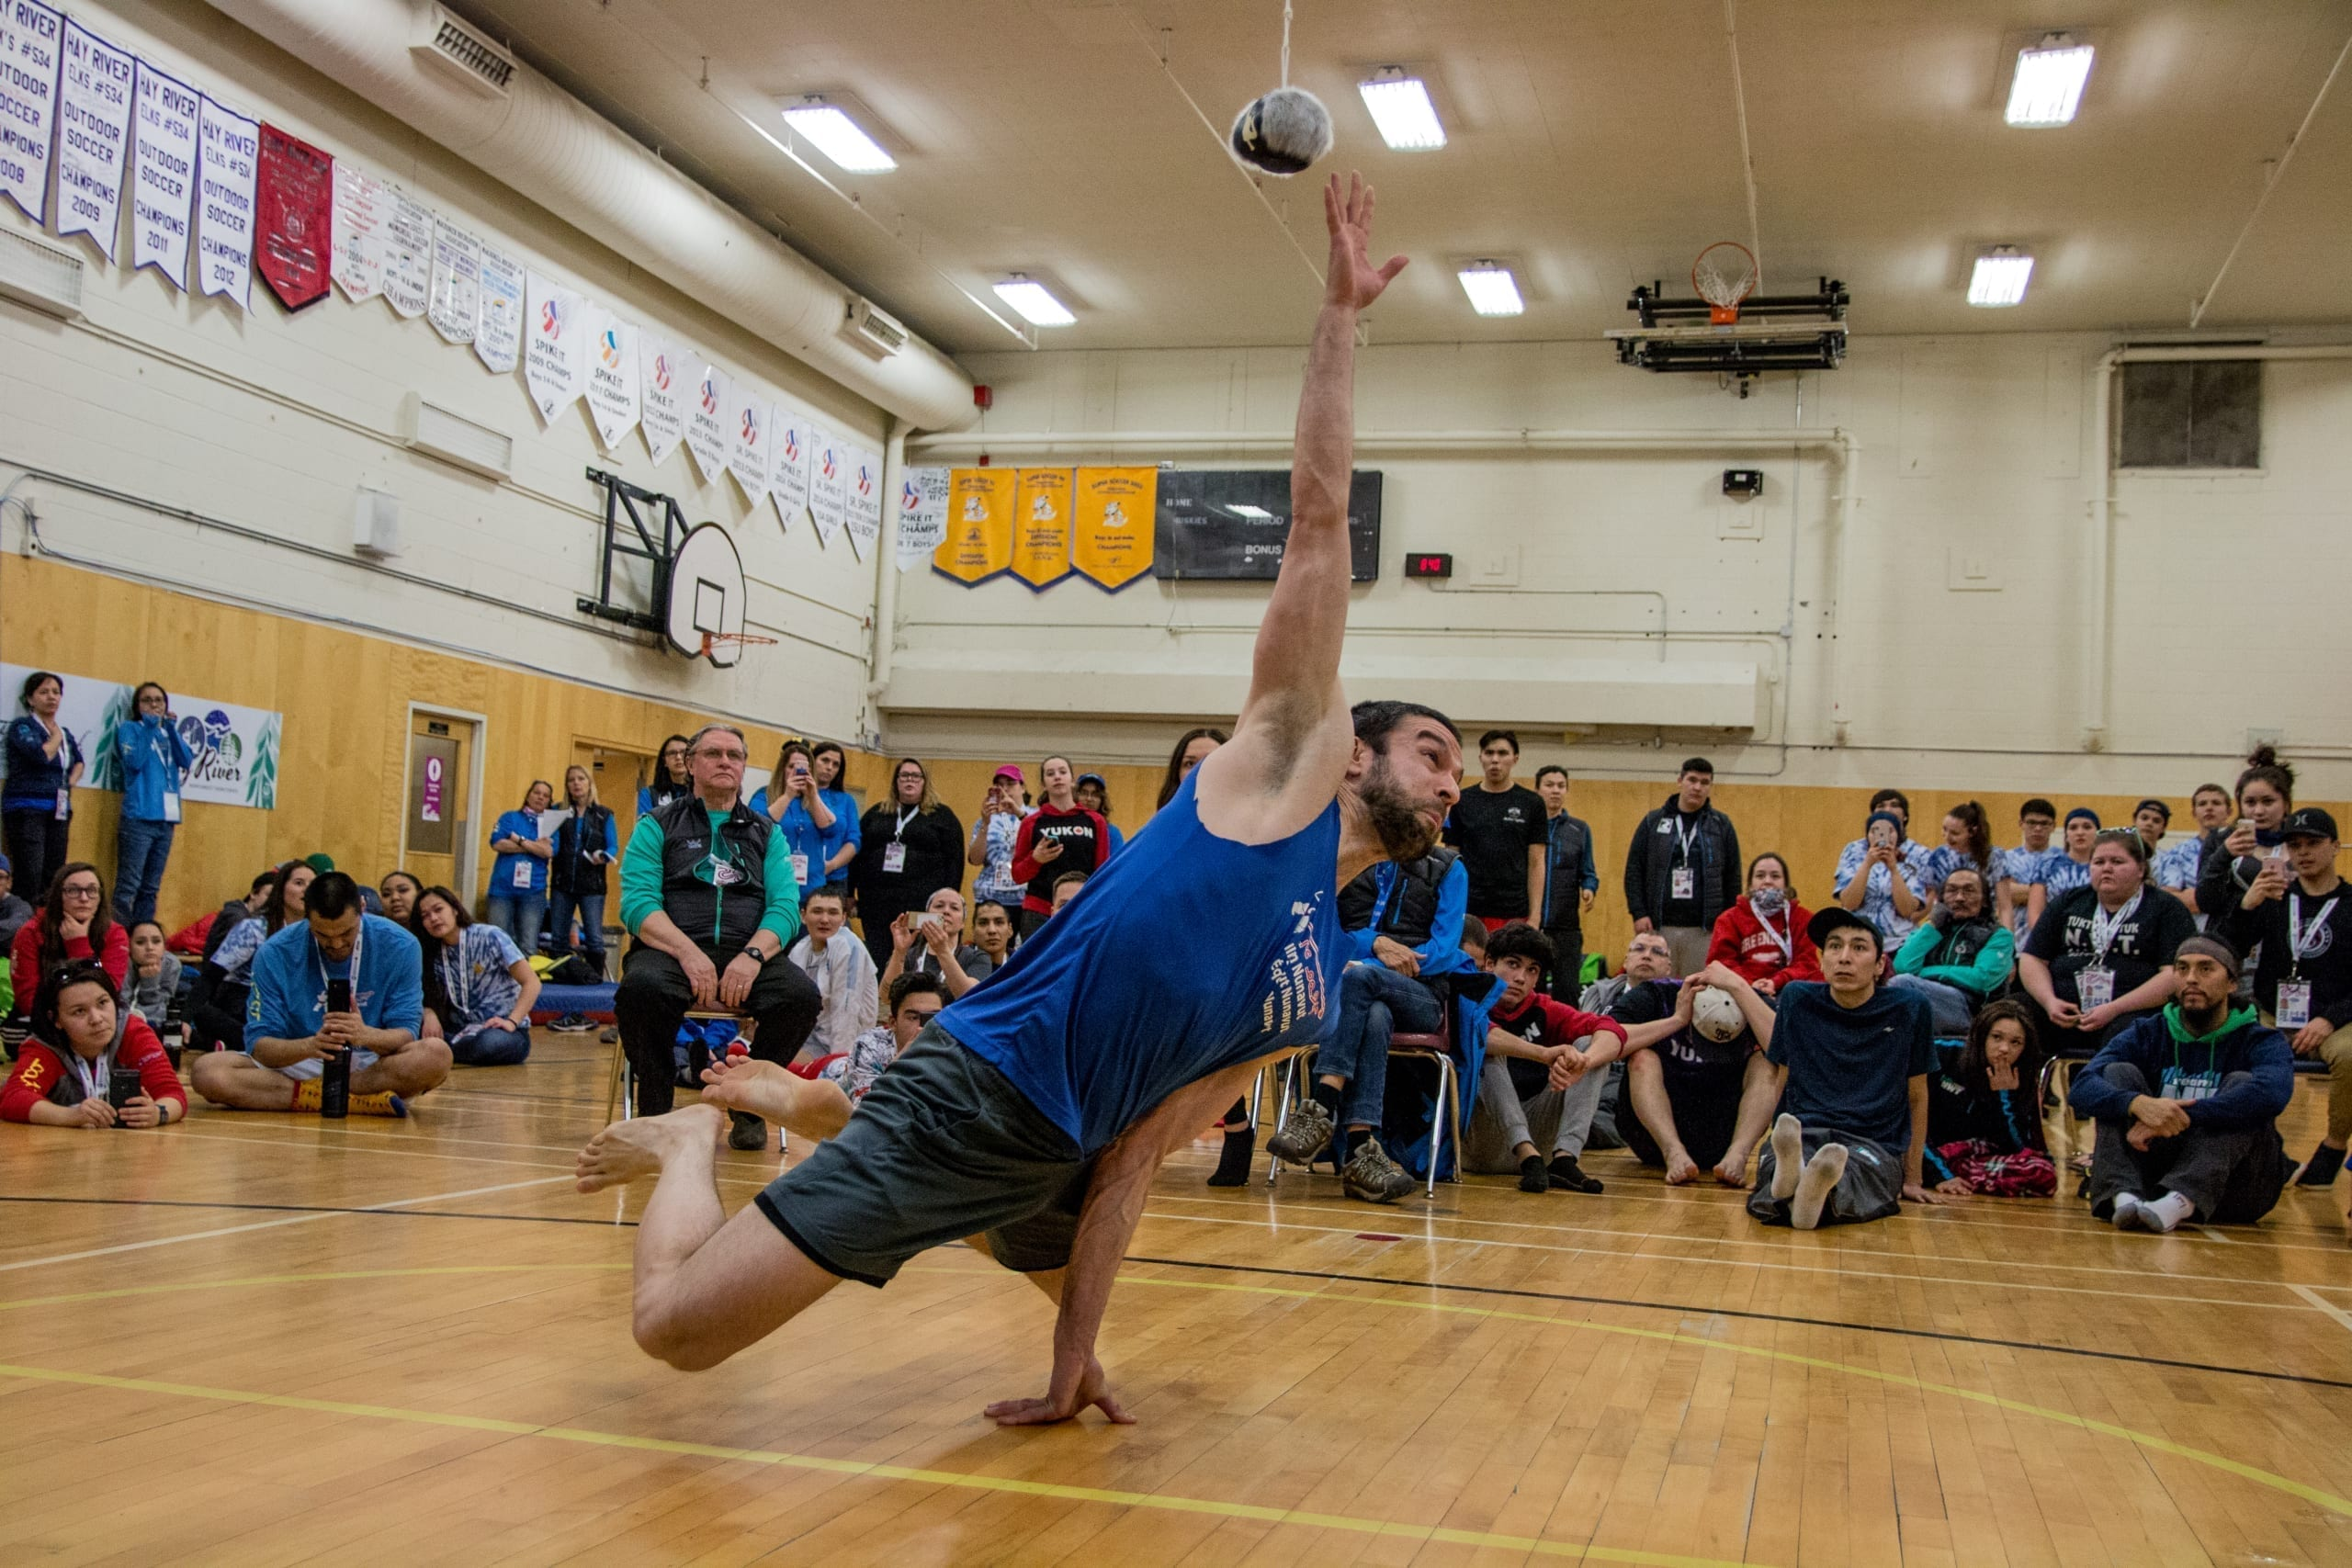 Arviat's Drew Bell reaches out to graze the sealskin ball during a record setting attempt in the one-hand reach at the 2018 Arctic Winter Games in Fort Smith, NWT. Bell's reach of 5 ft. 7 in. surpassed the previous record by one inch. NNSL file photo